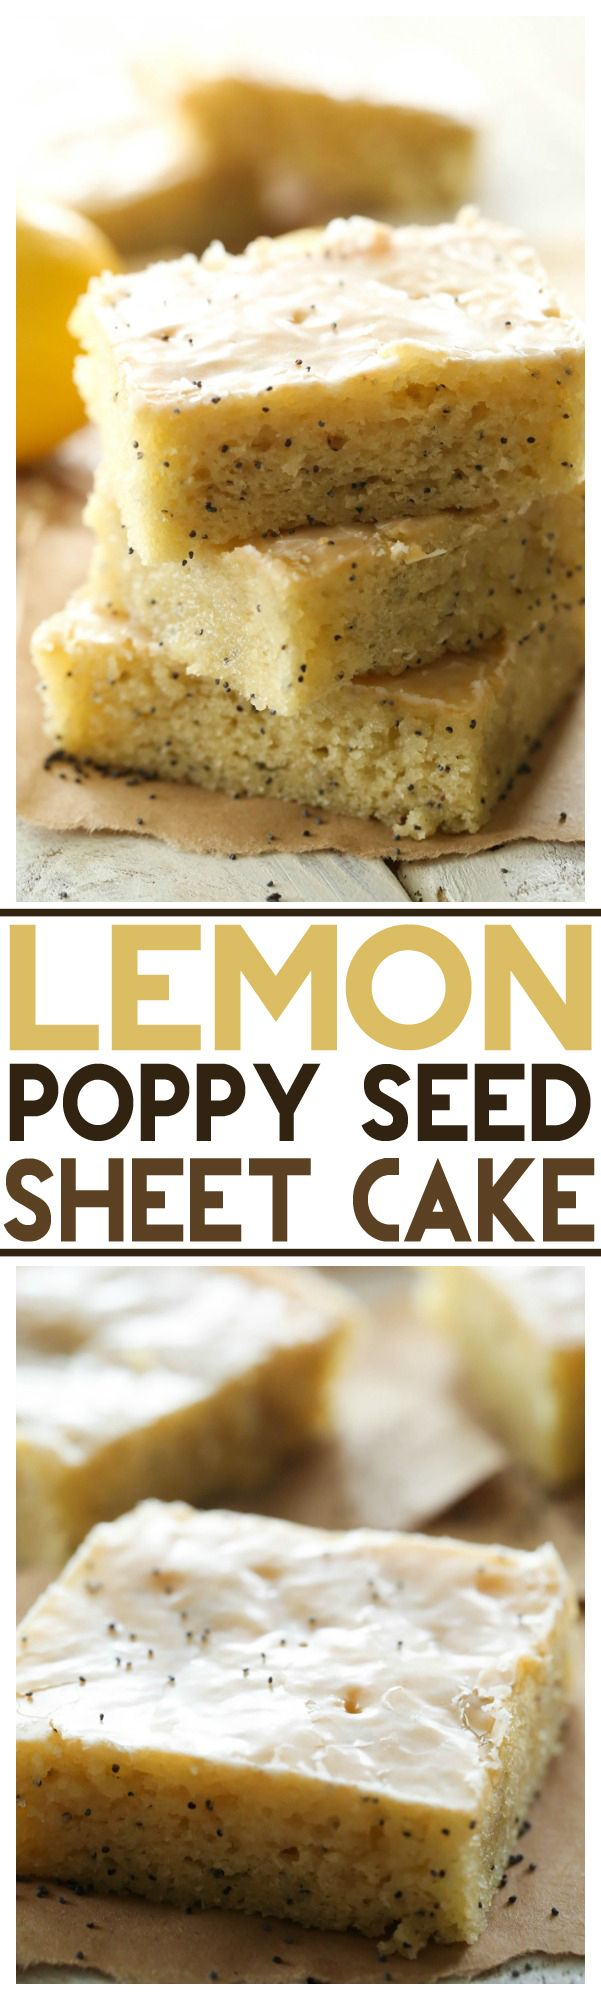 Lemon Poppy Seed Sheet Cake... This cake is so moist and delicious! The texture and flavor are incredible and this recipe will quickly become a new favorite!